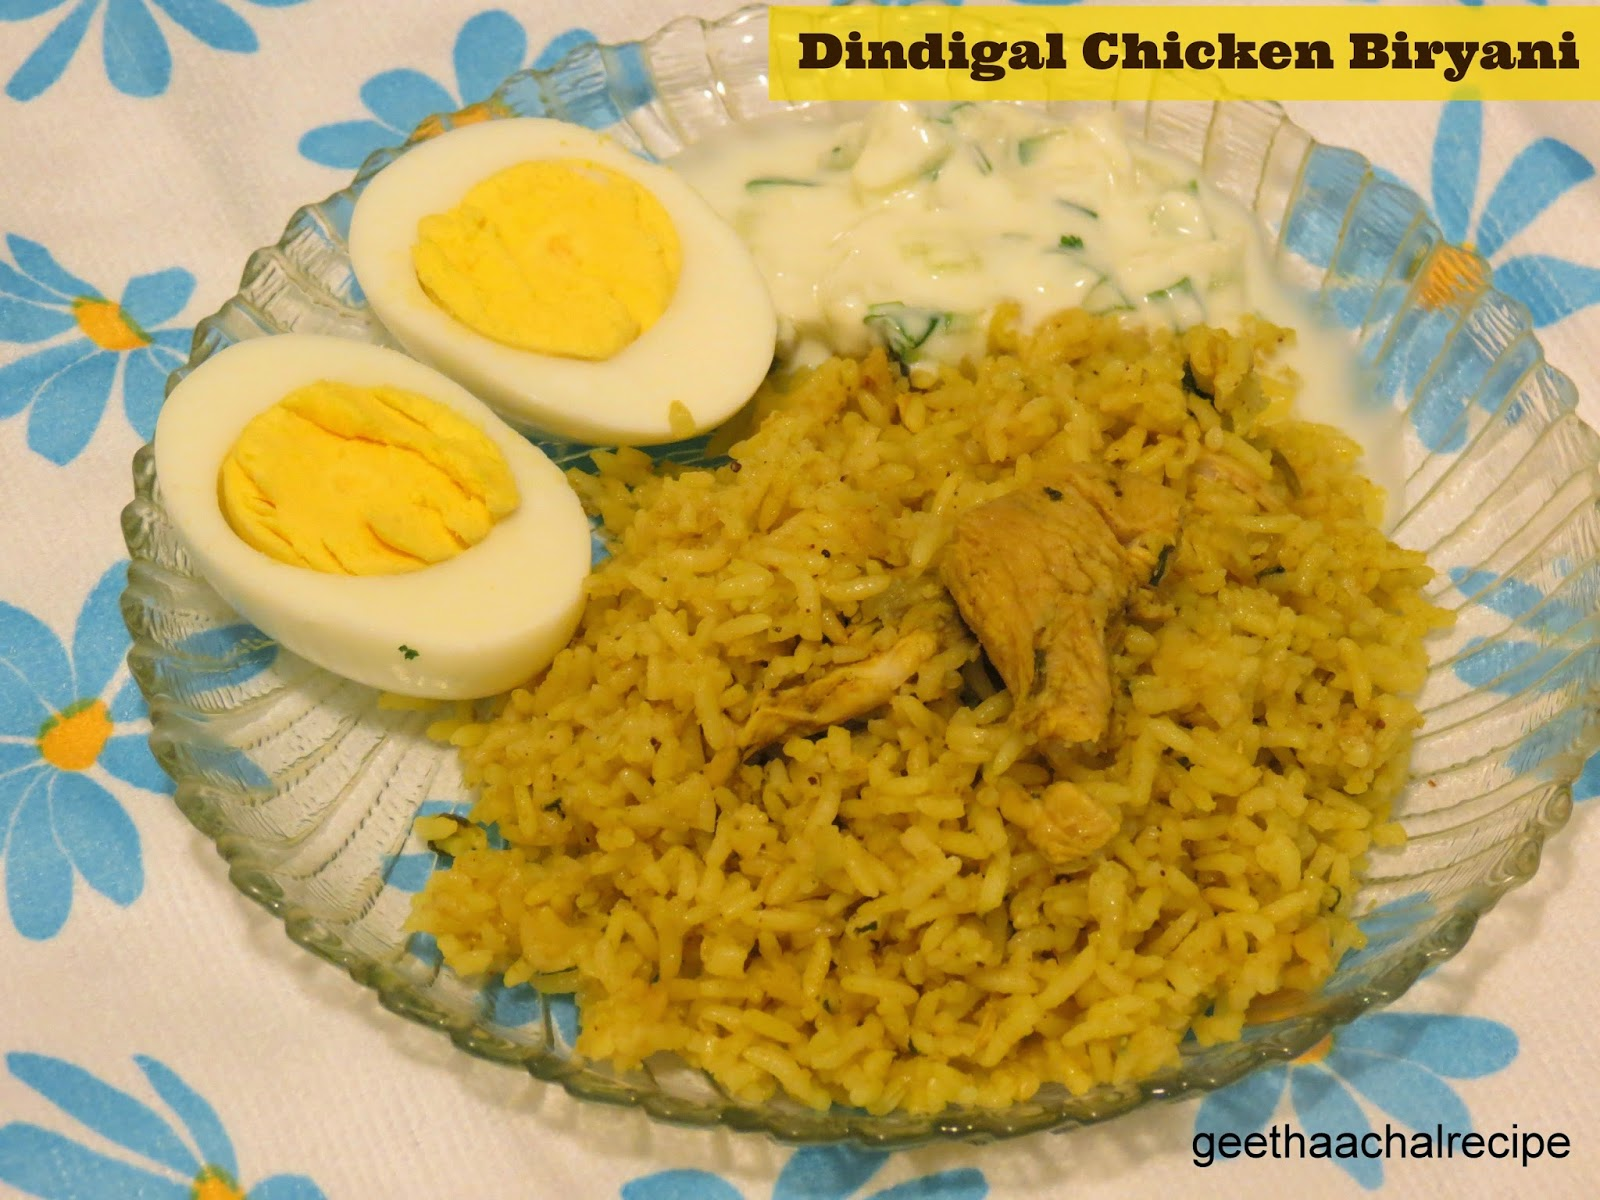 Dindugal Chicken Biryani